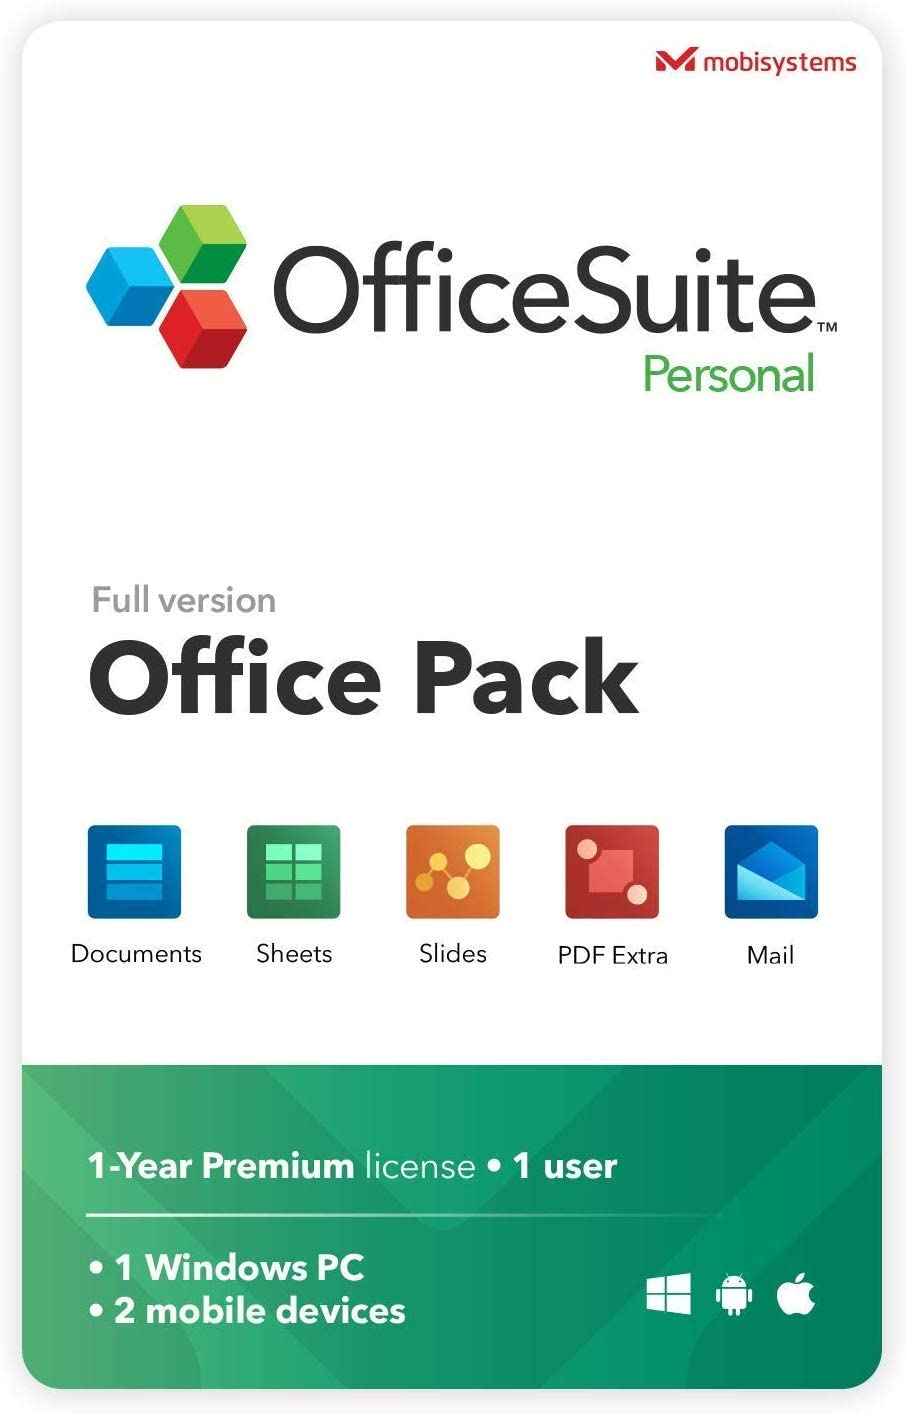 B07N45MZVB OfficeSuite Personal Compatible with Microsoft® Office Word® Excel® & PowerPoint® and Adobe® PDF for PC Windows 10, 8.1, 8, 7 - 1-year license, 1 user 61NhmI9BWpL